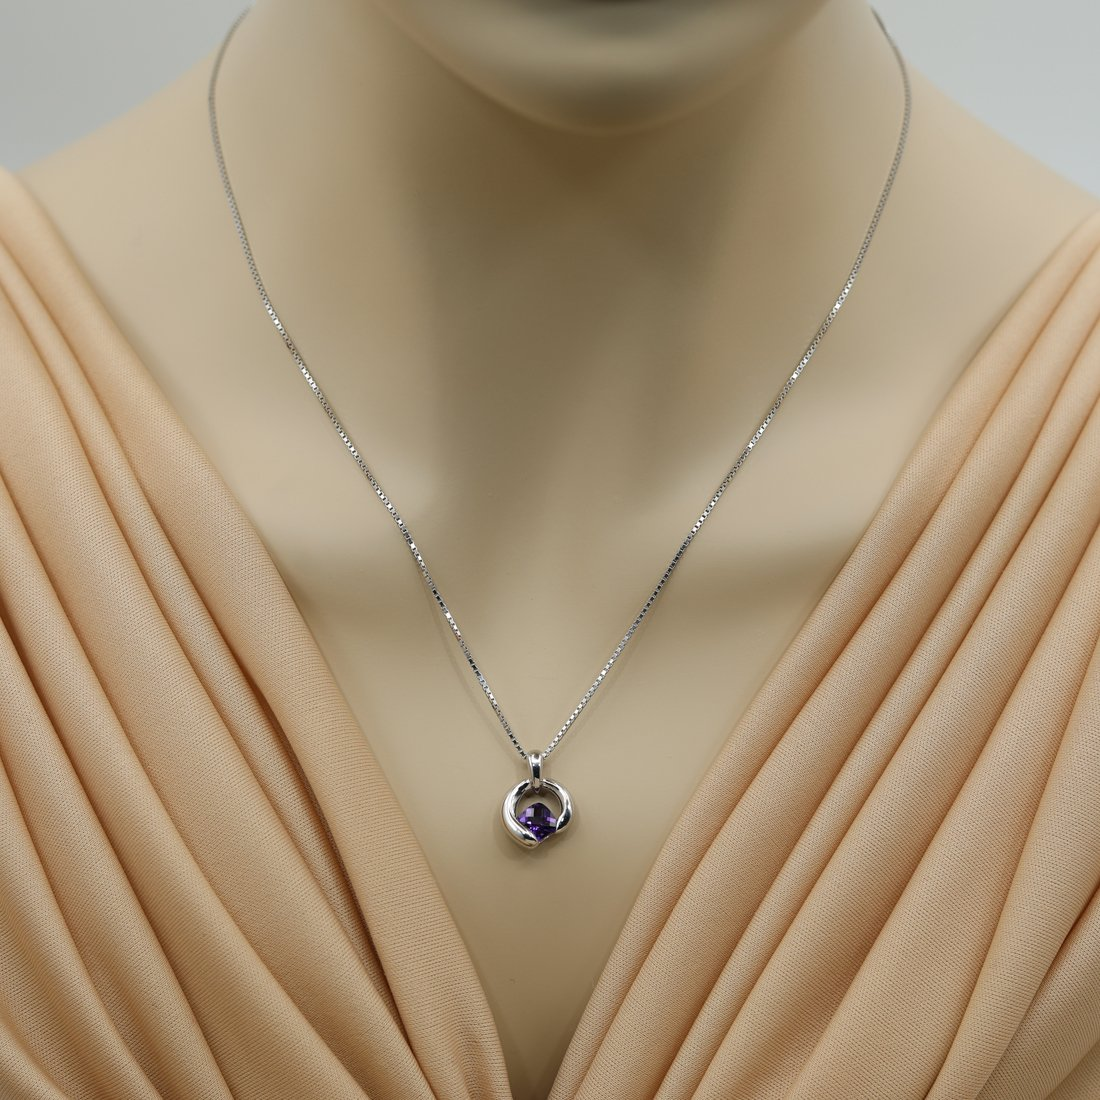 Cushion Cut Orbit Sterling Silver Pendant Necklace available in various colored stones